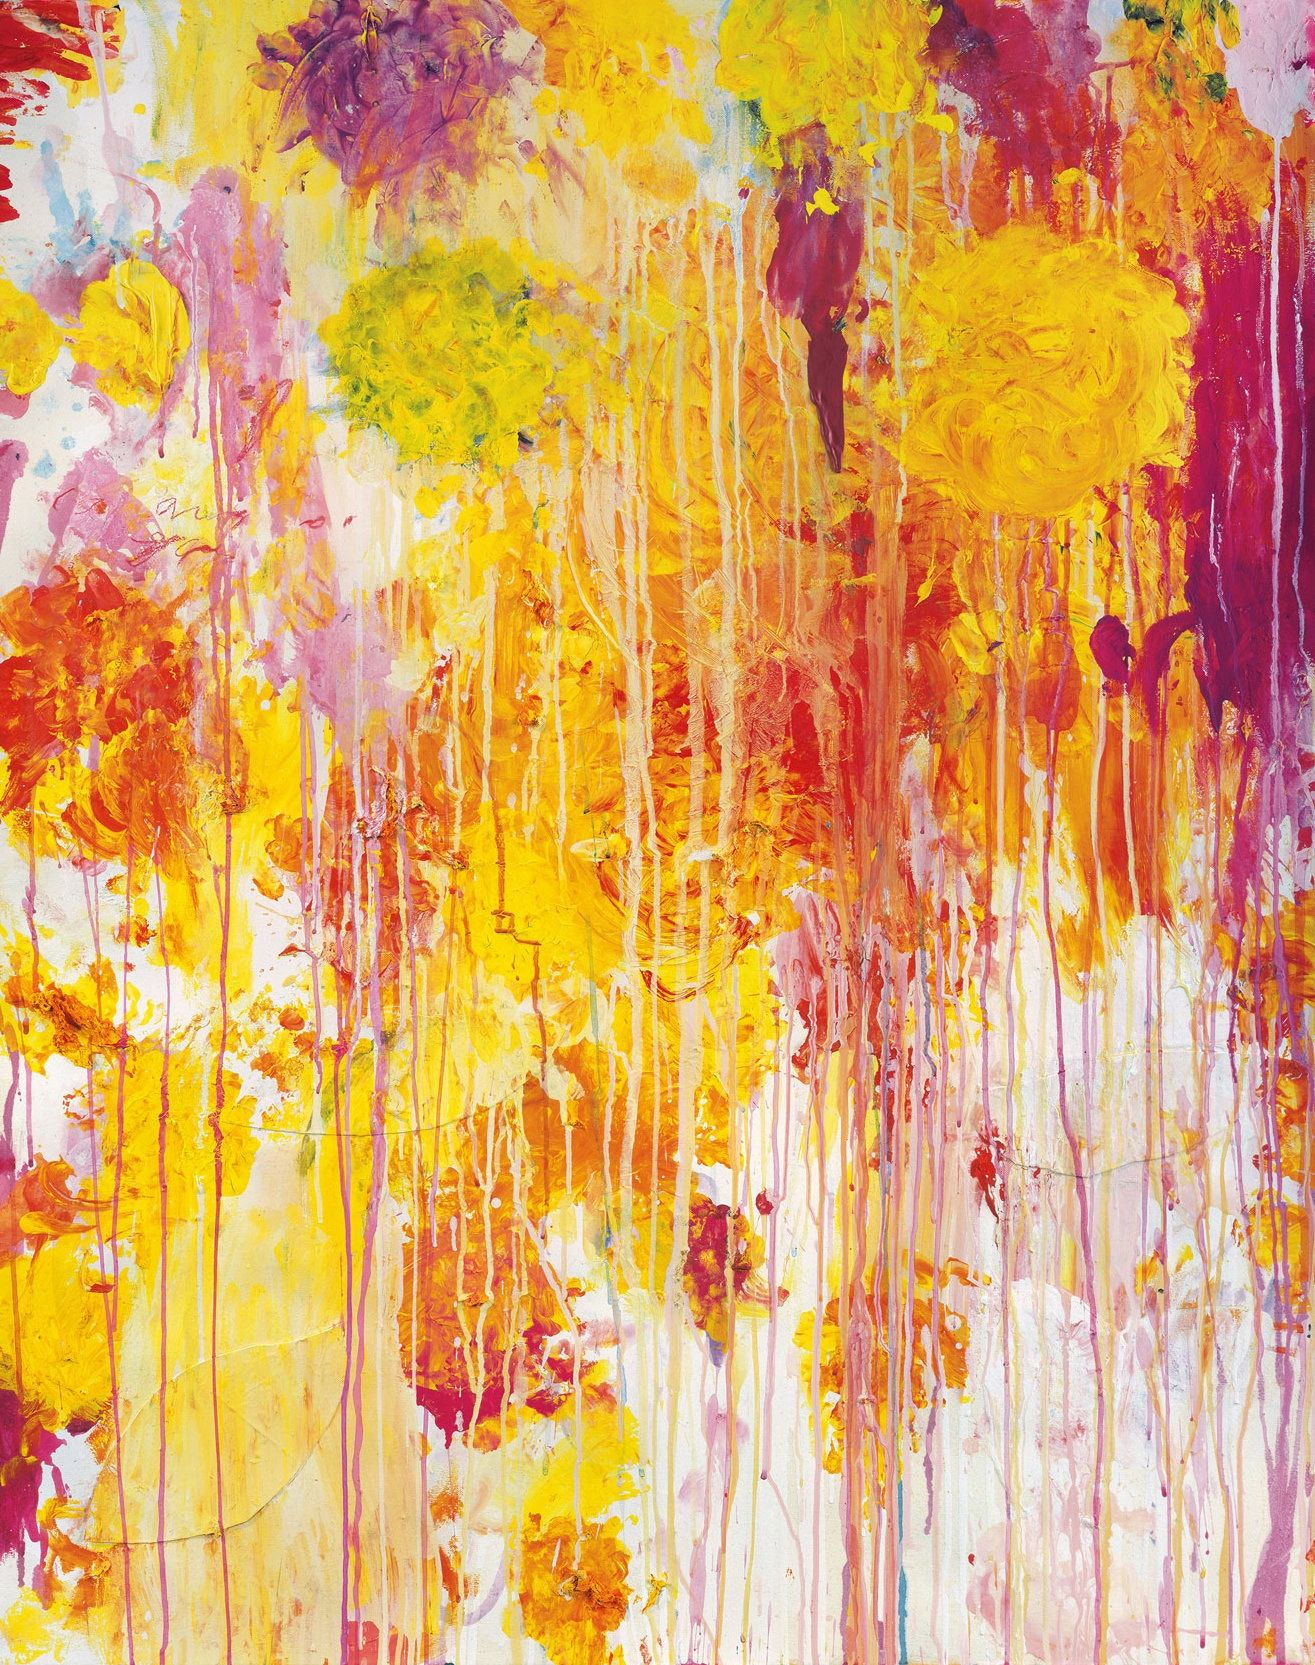 Cy Twombly, Redefined by His Drawings - The New York Times in 2020 | Cy  twombly, Drawings, Painting